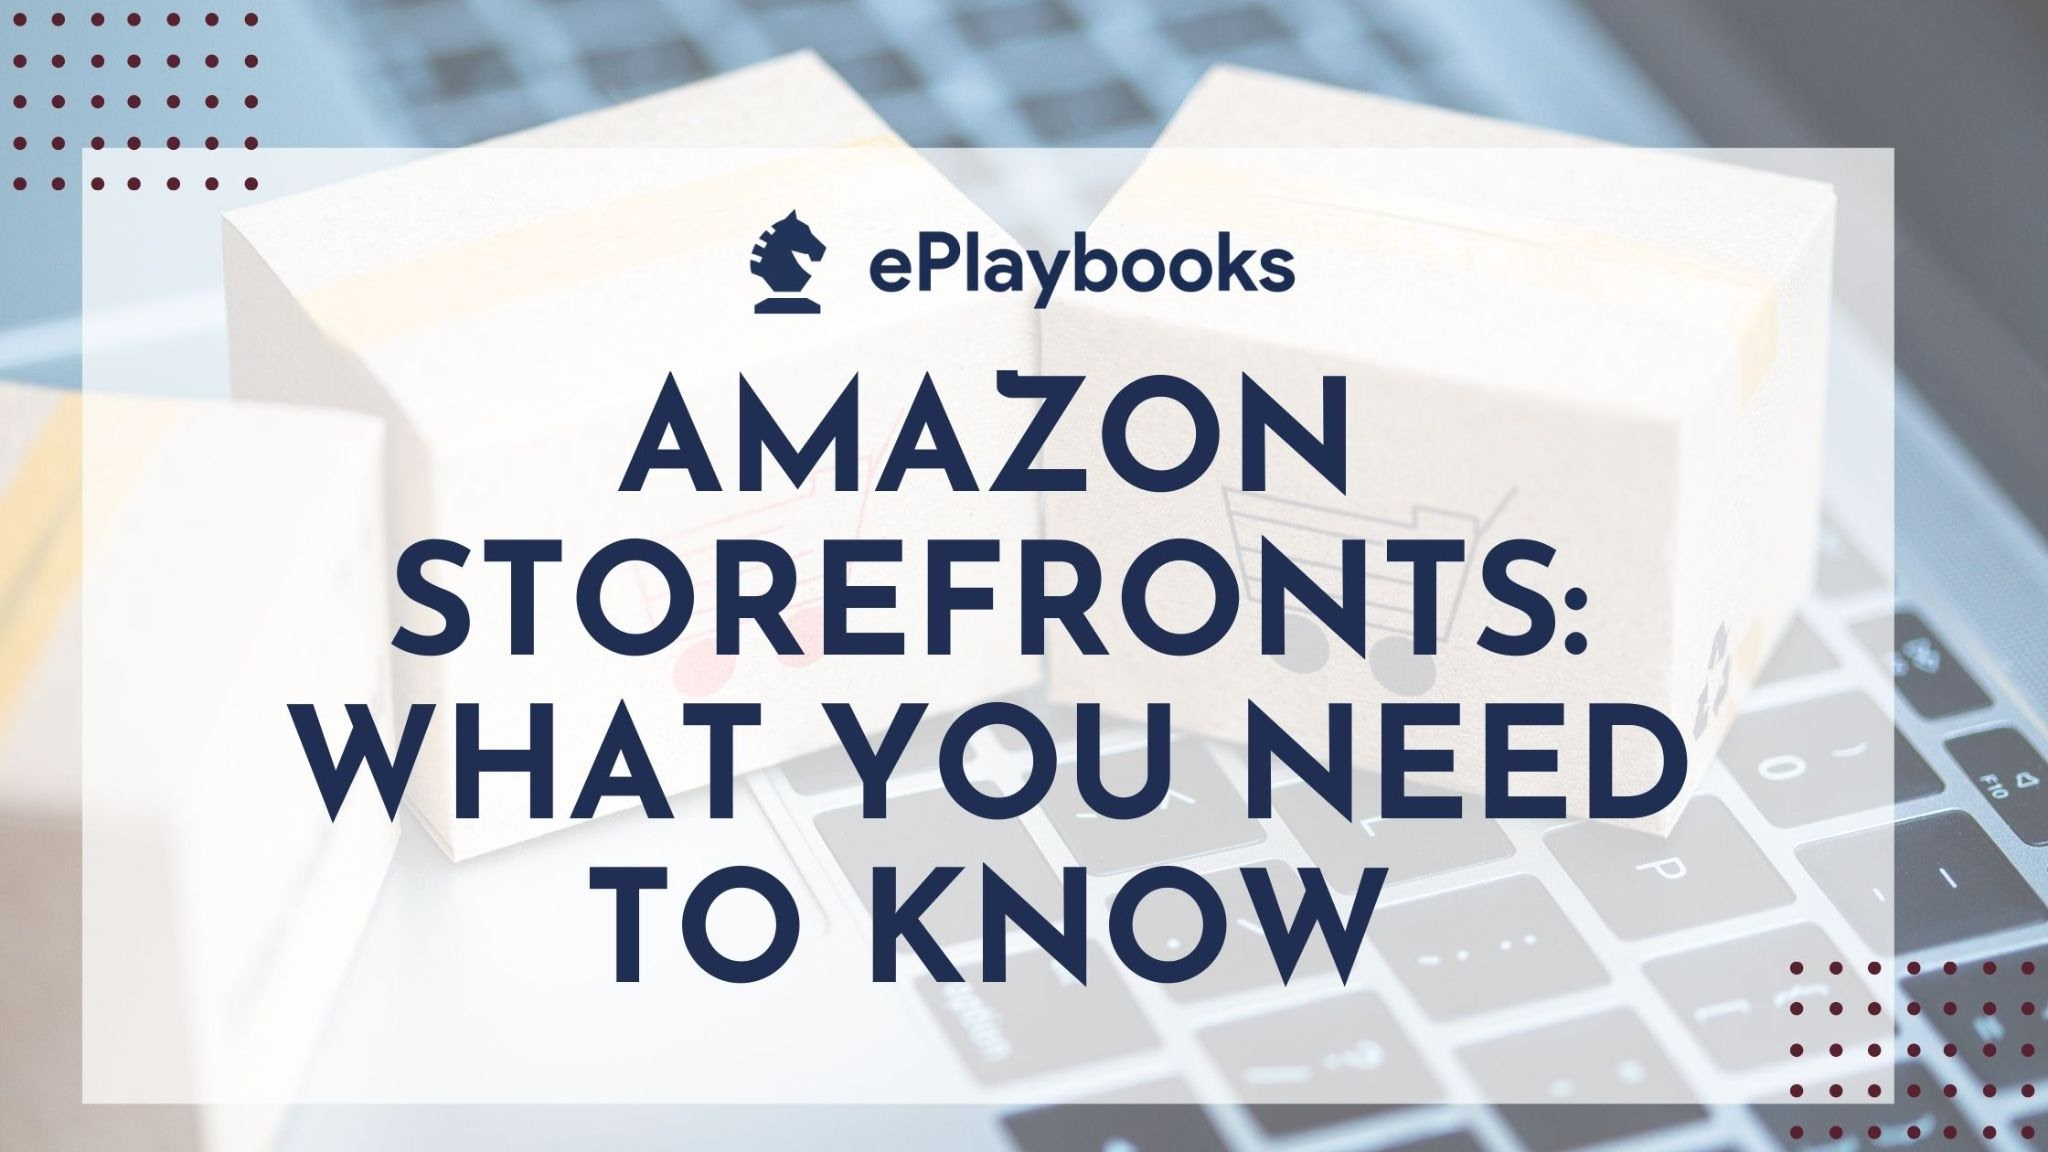 Amazon storefronts: what you need to know